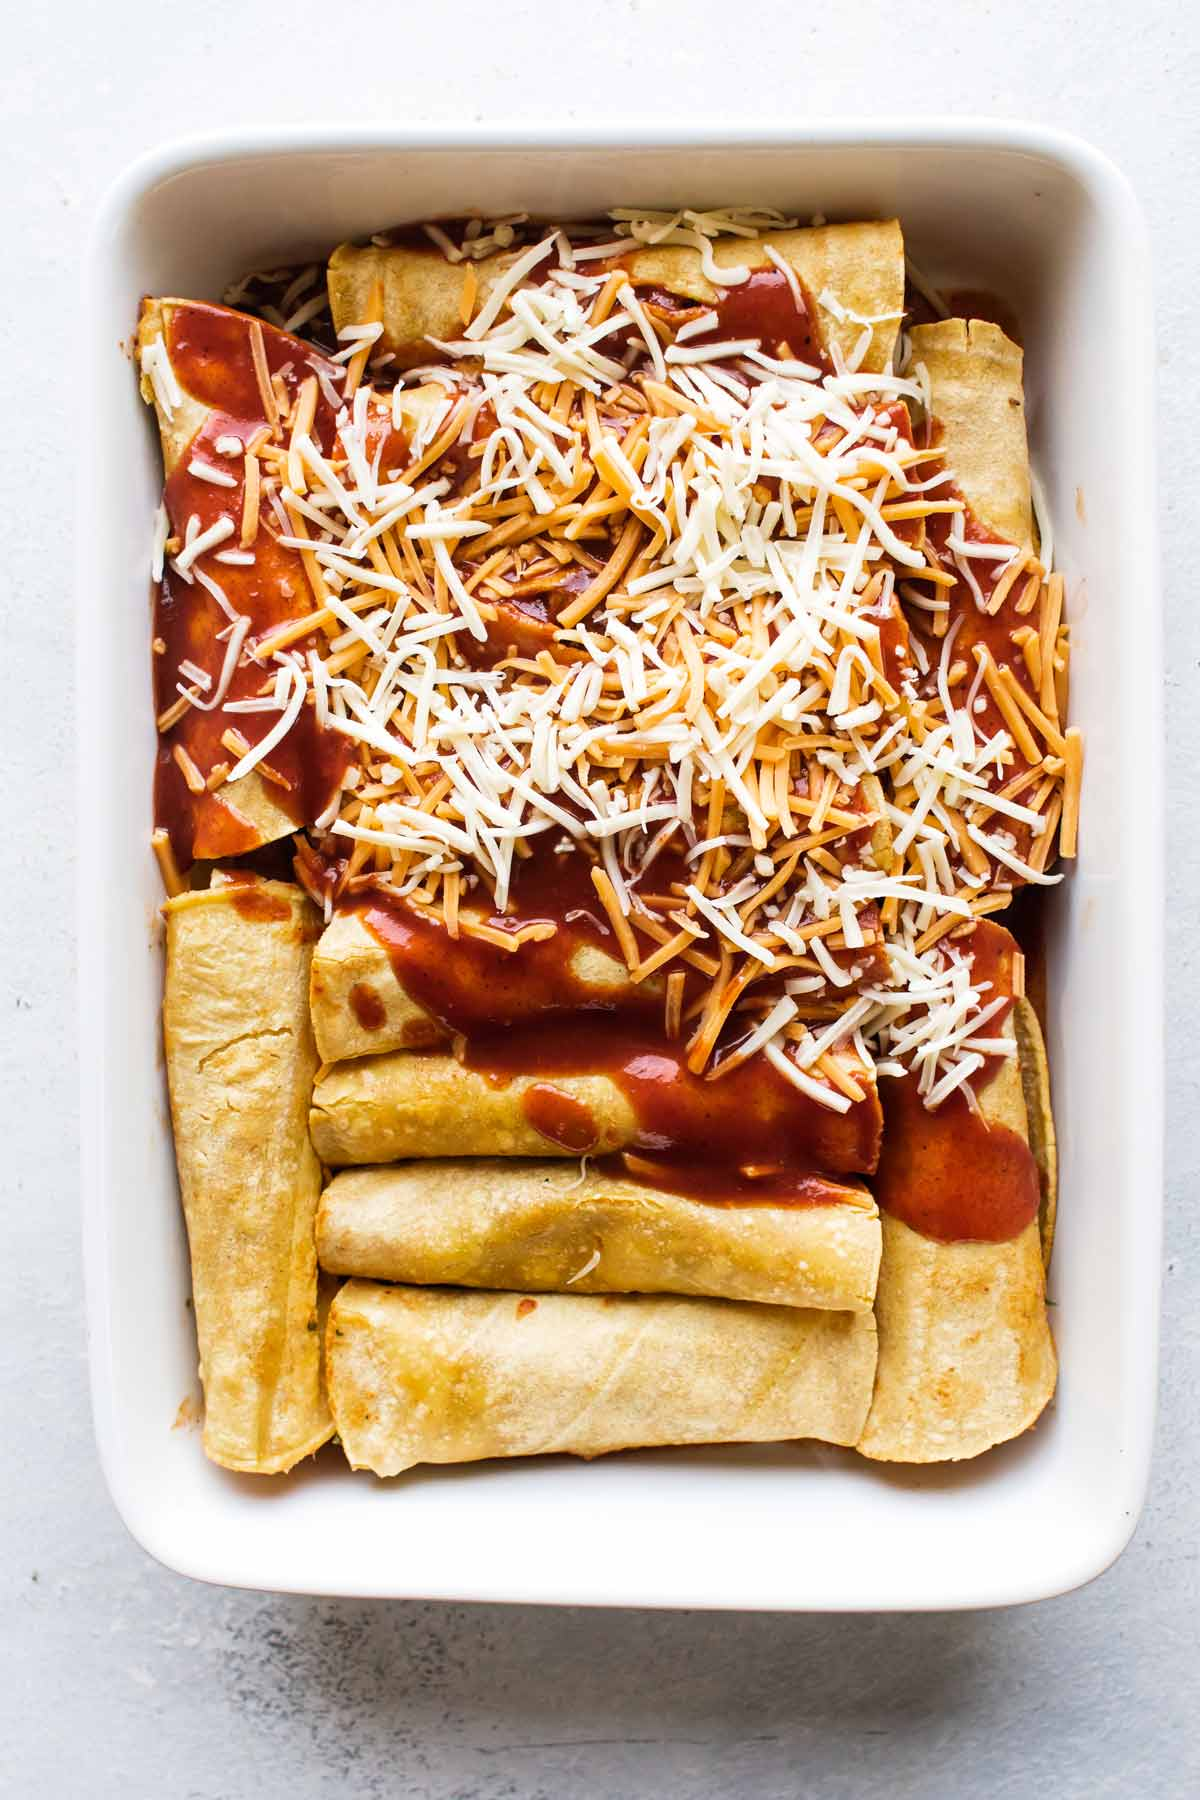 enchiladas being assembled in a baking dish.